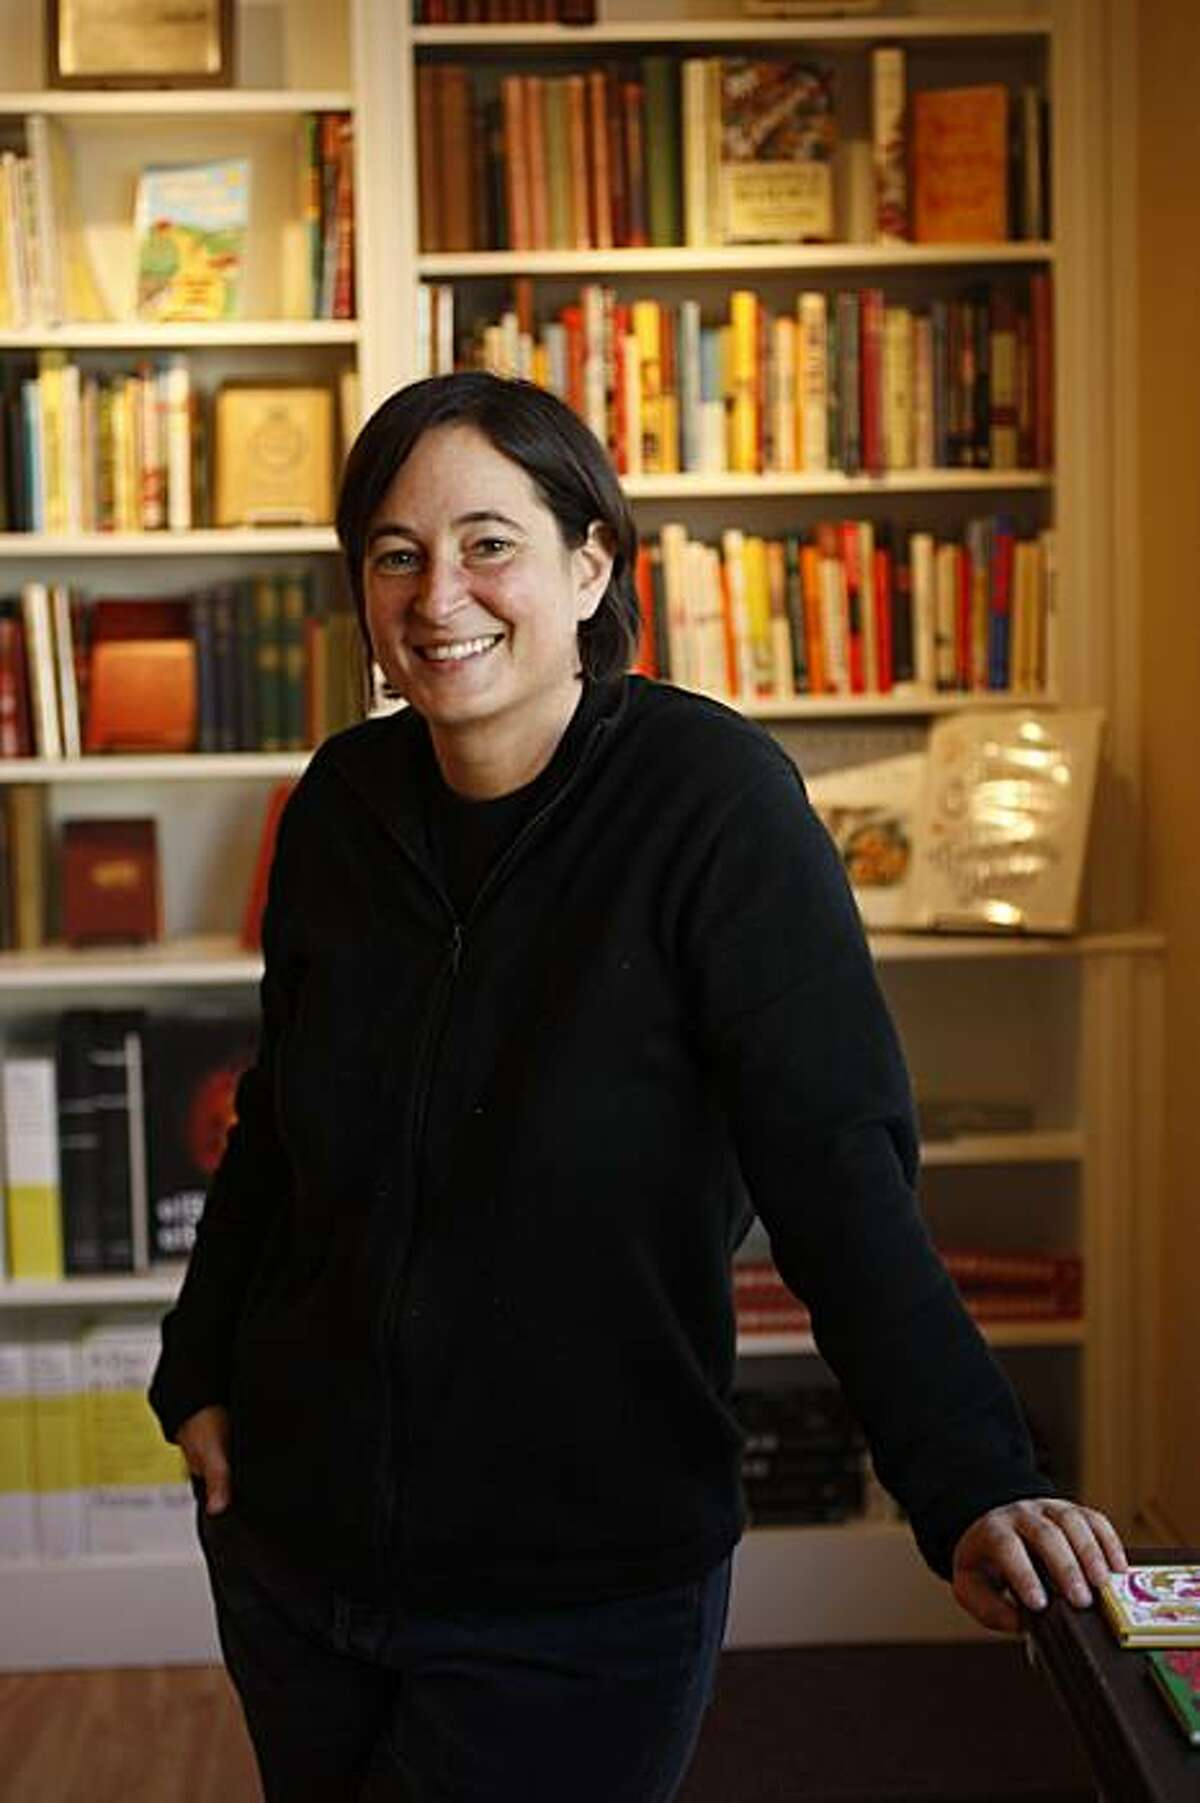 Celia Sack, owner of Omnivore, a new bookstore that is devoted to new and antiquarian cookbooks in San Francisco, Calif., on January 7, 2009.